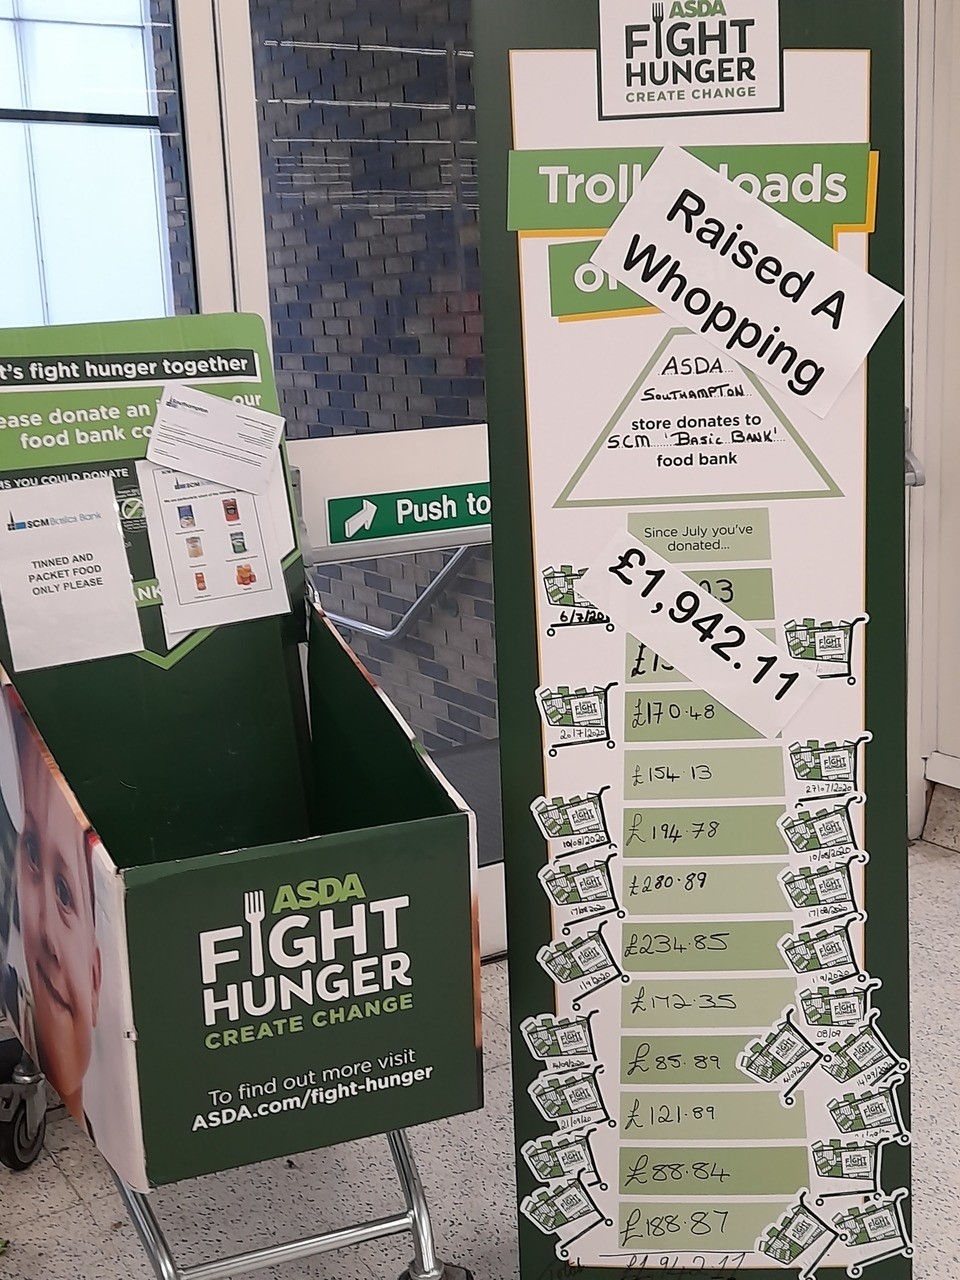 Working together to fight hunger | Asda Southampton